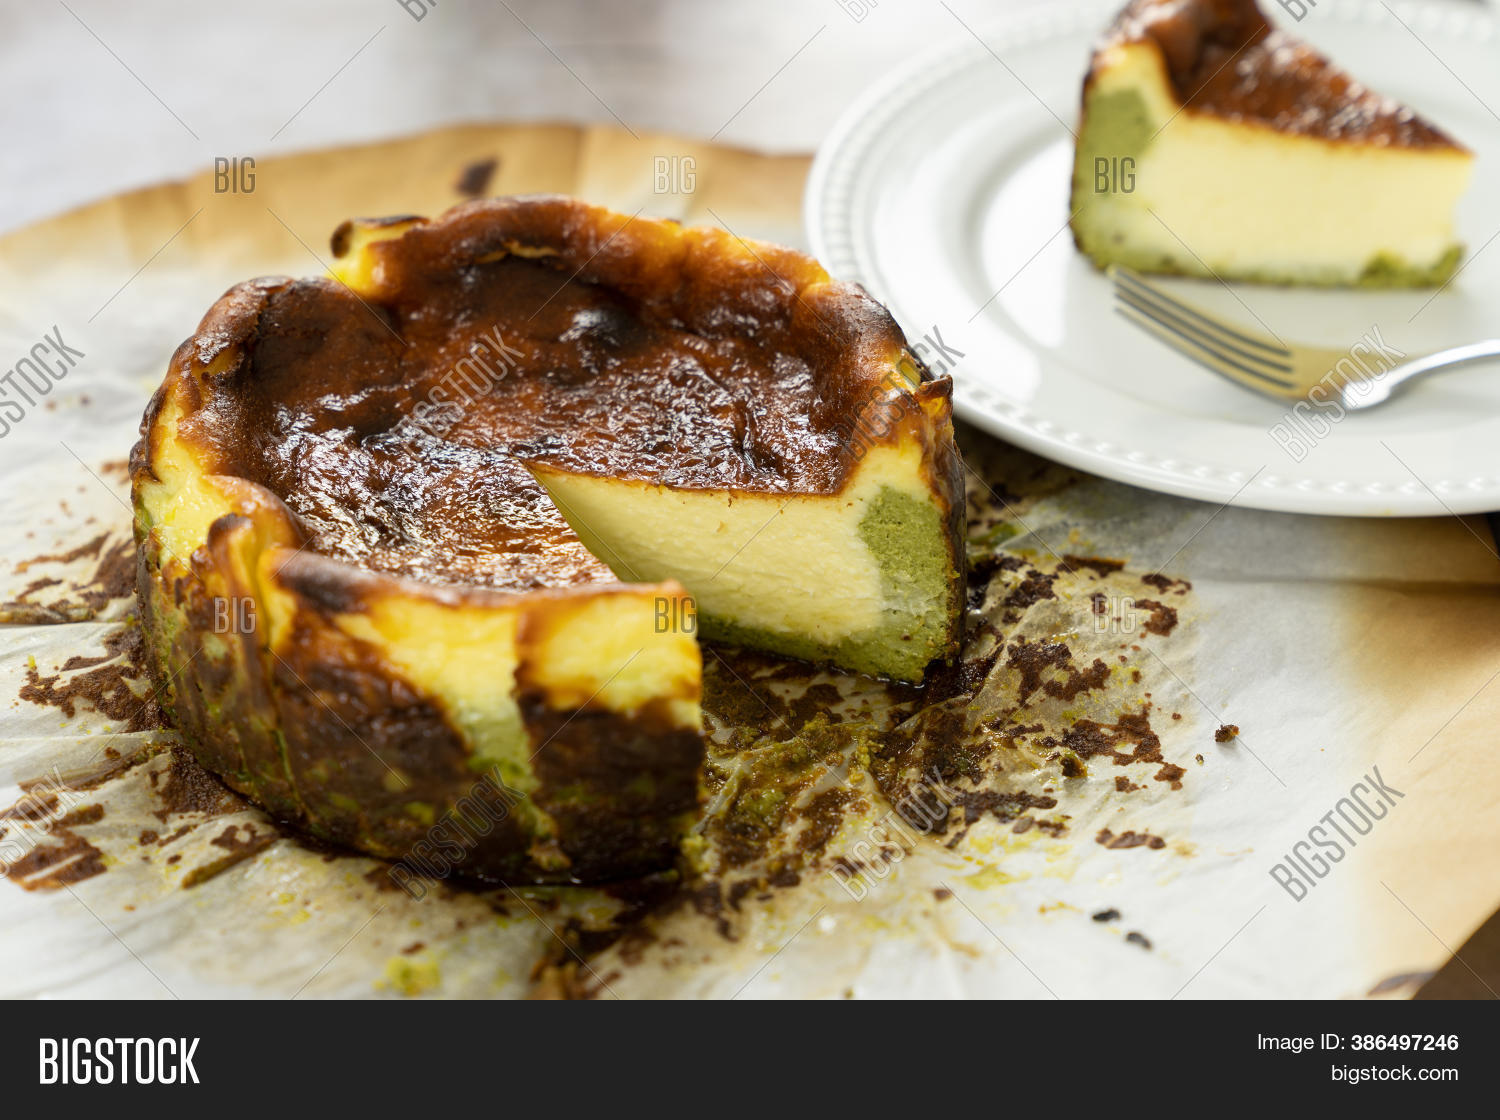 Basque Matcha Burnt Image Photo Free Trial Bigstock